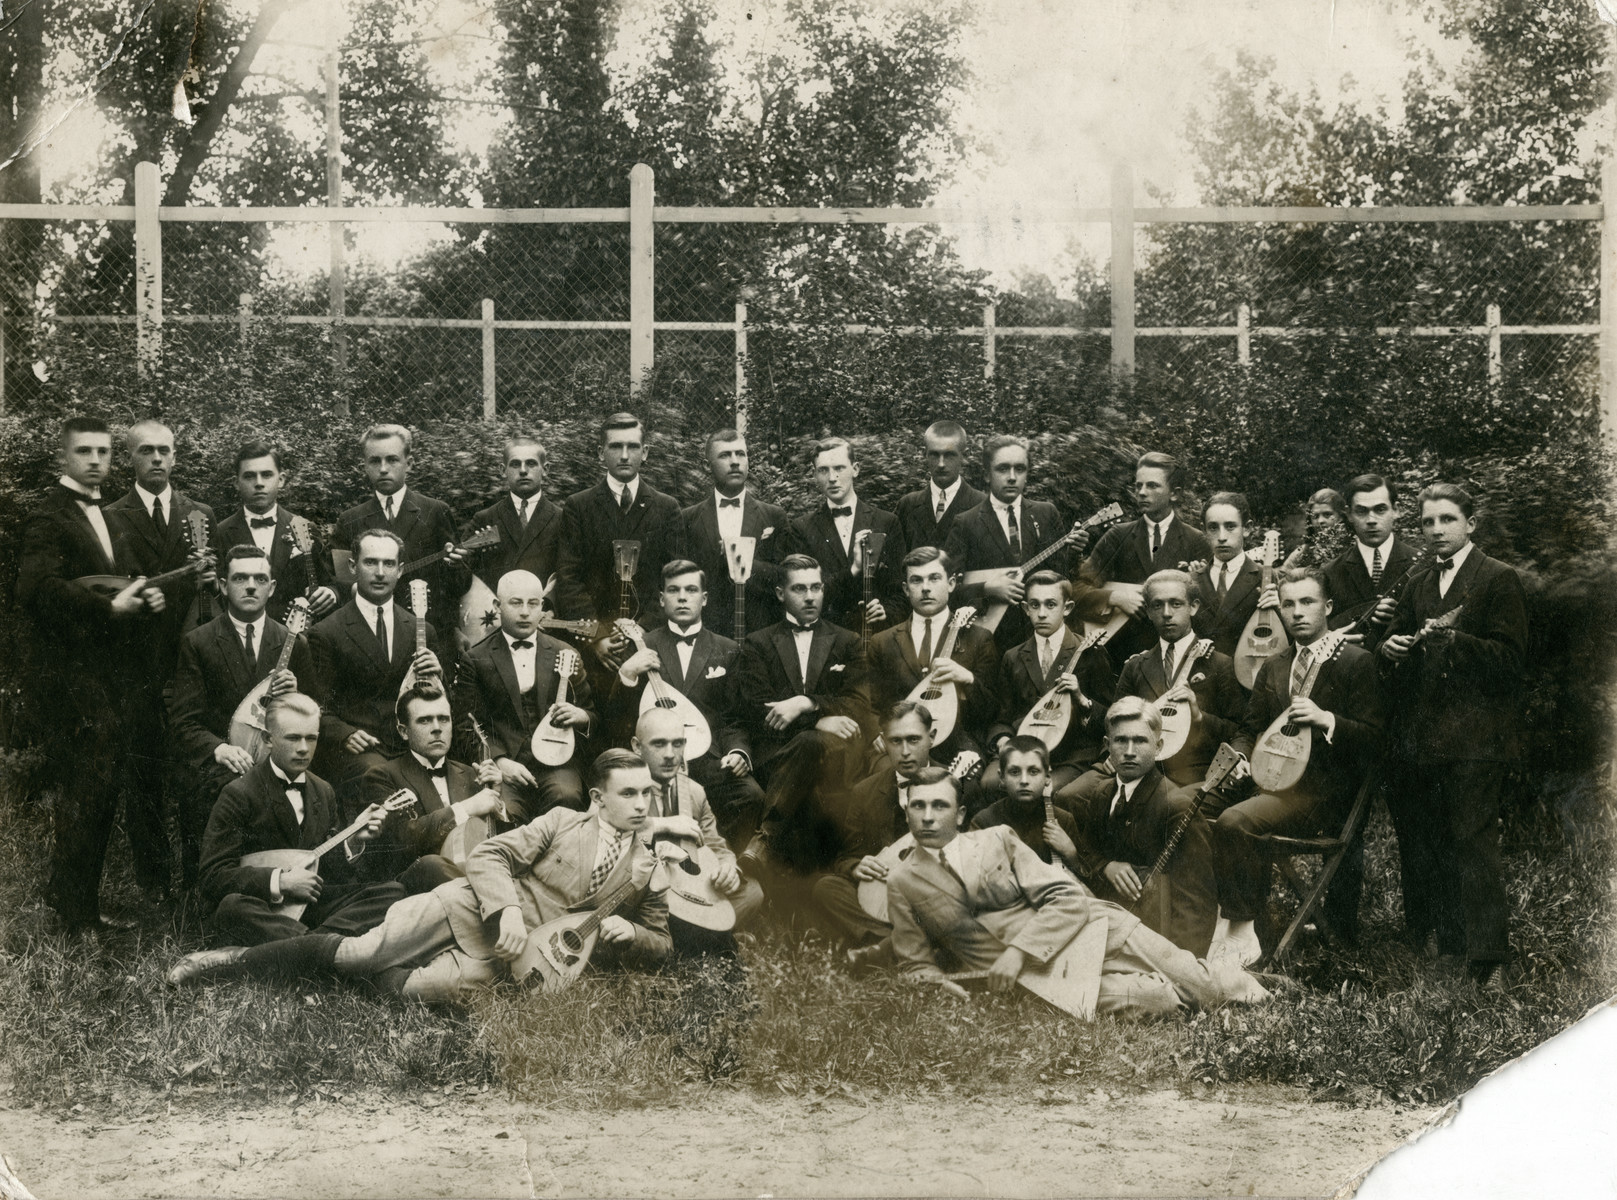 A photo of an all men's mandolin orchestra.  Feivel Frankfowicz is pictured in the middle row, third person from the right.